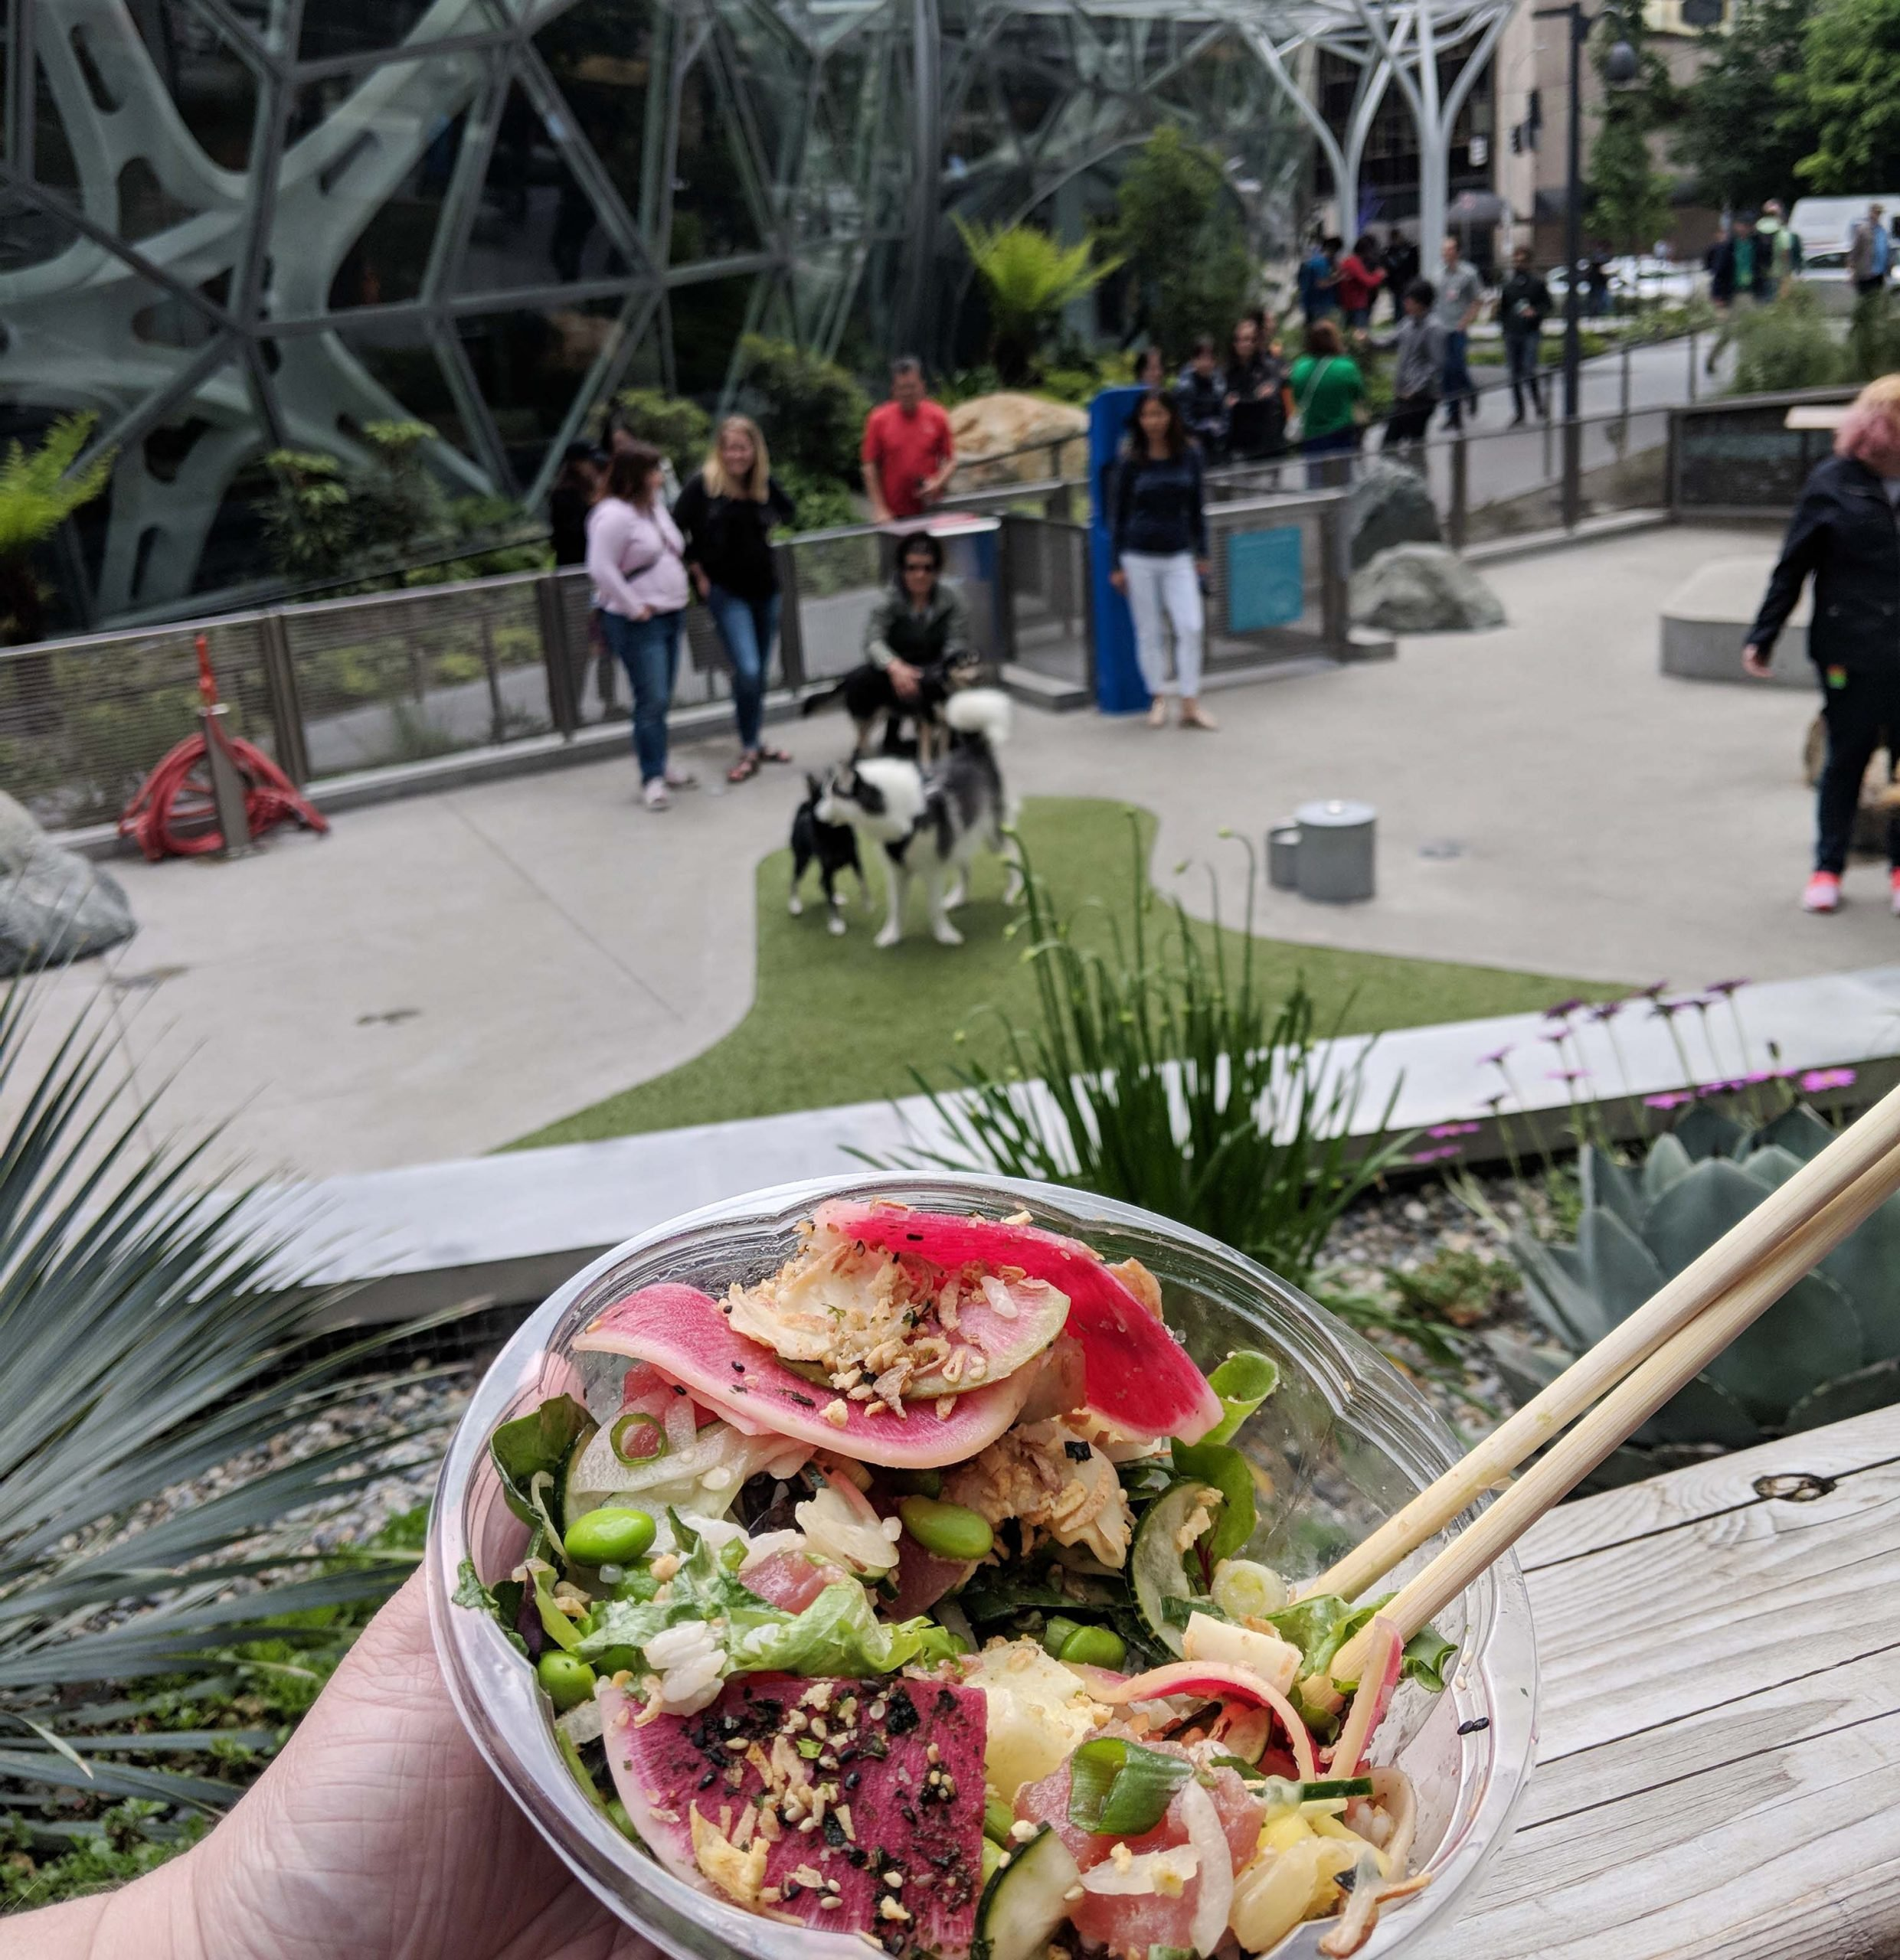 A poke salad held with the amazon sphere dog park in the background